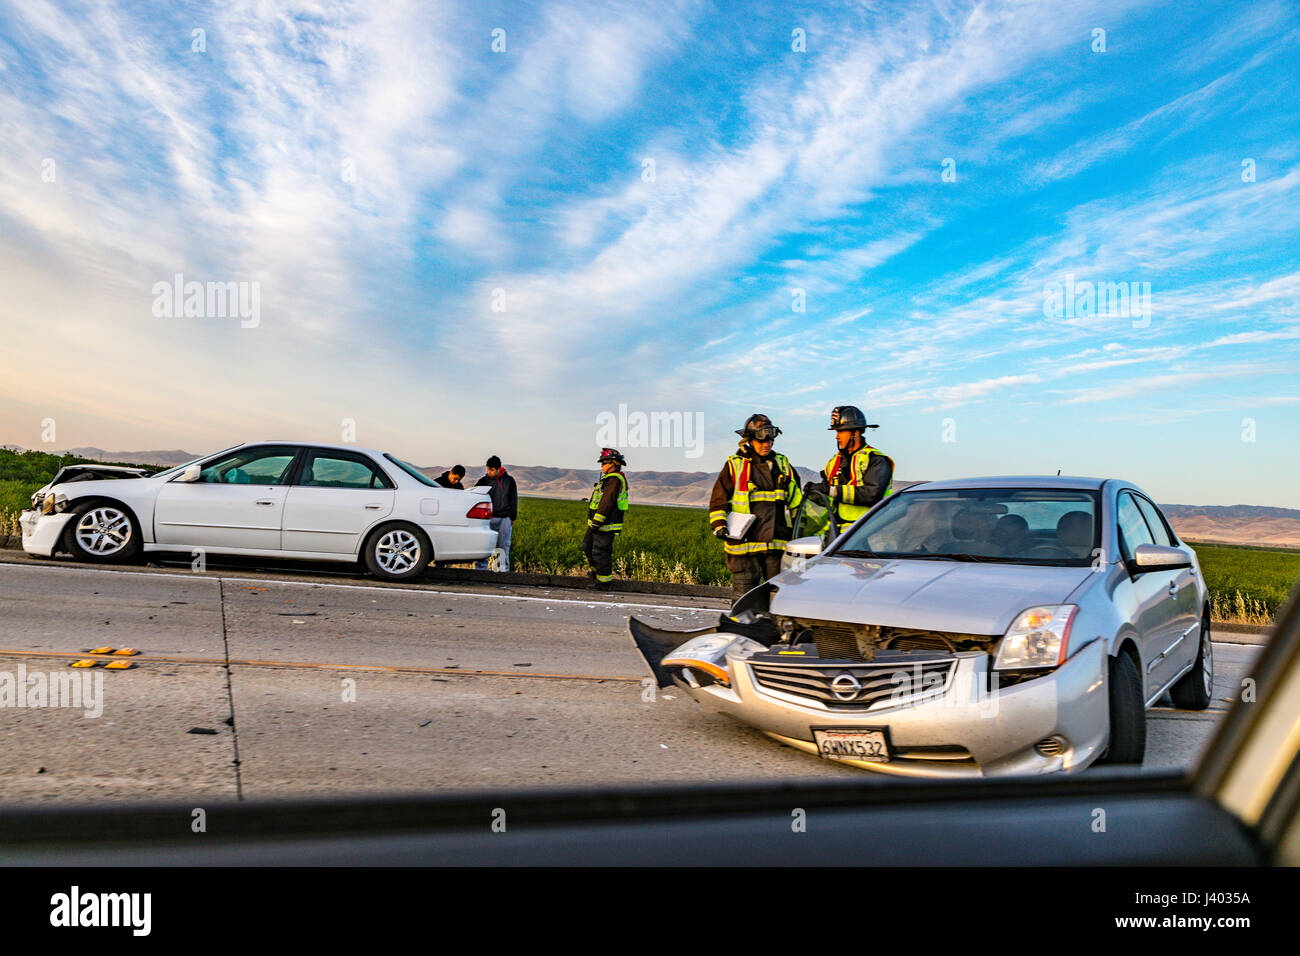 A two car accident on the California Highway 132 where it meets